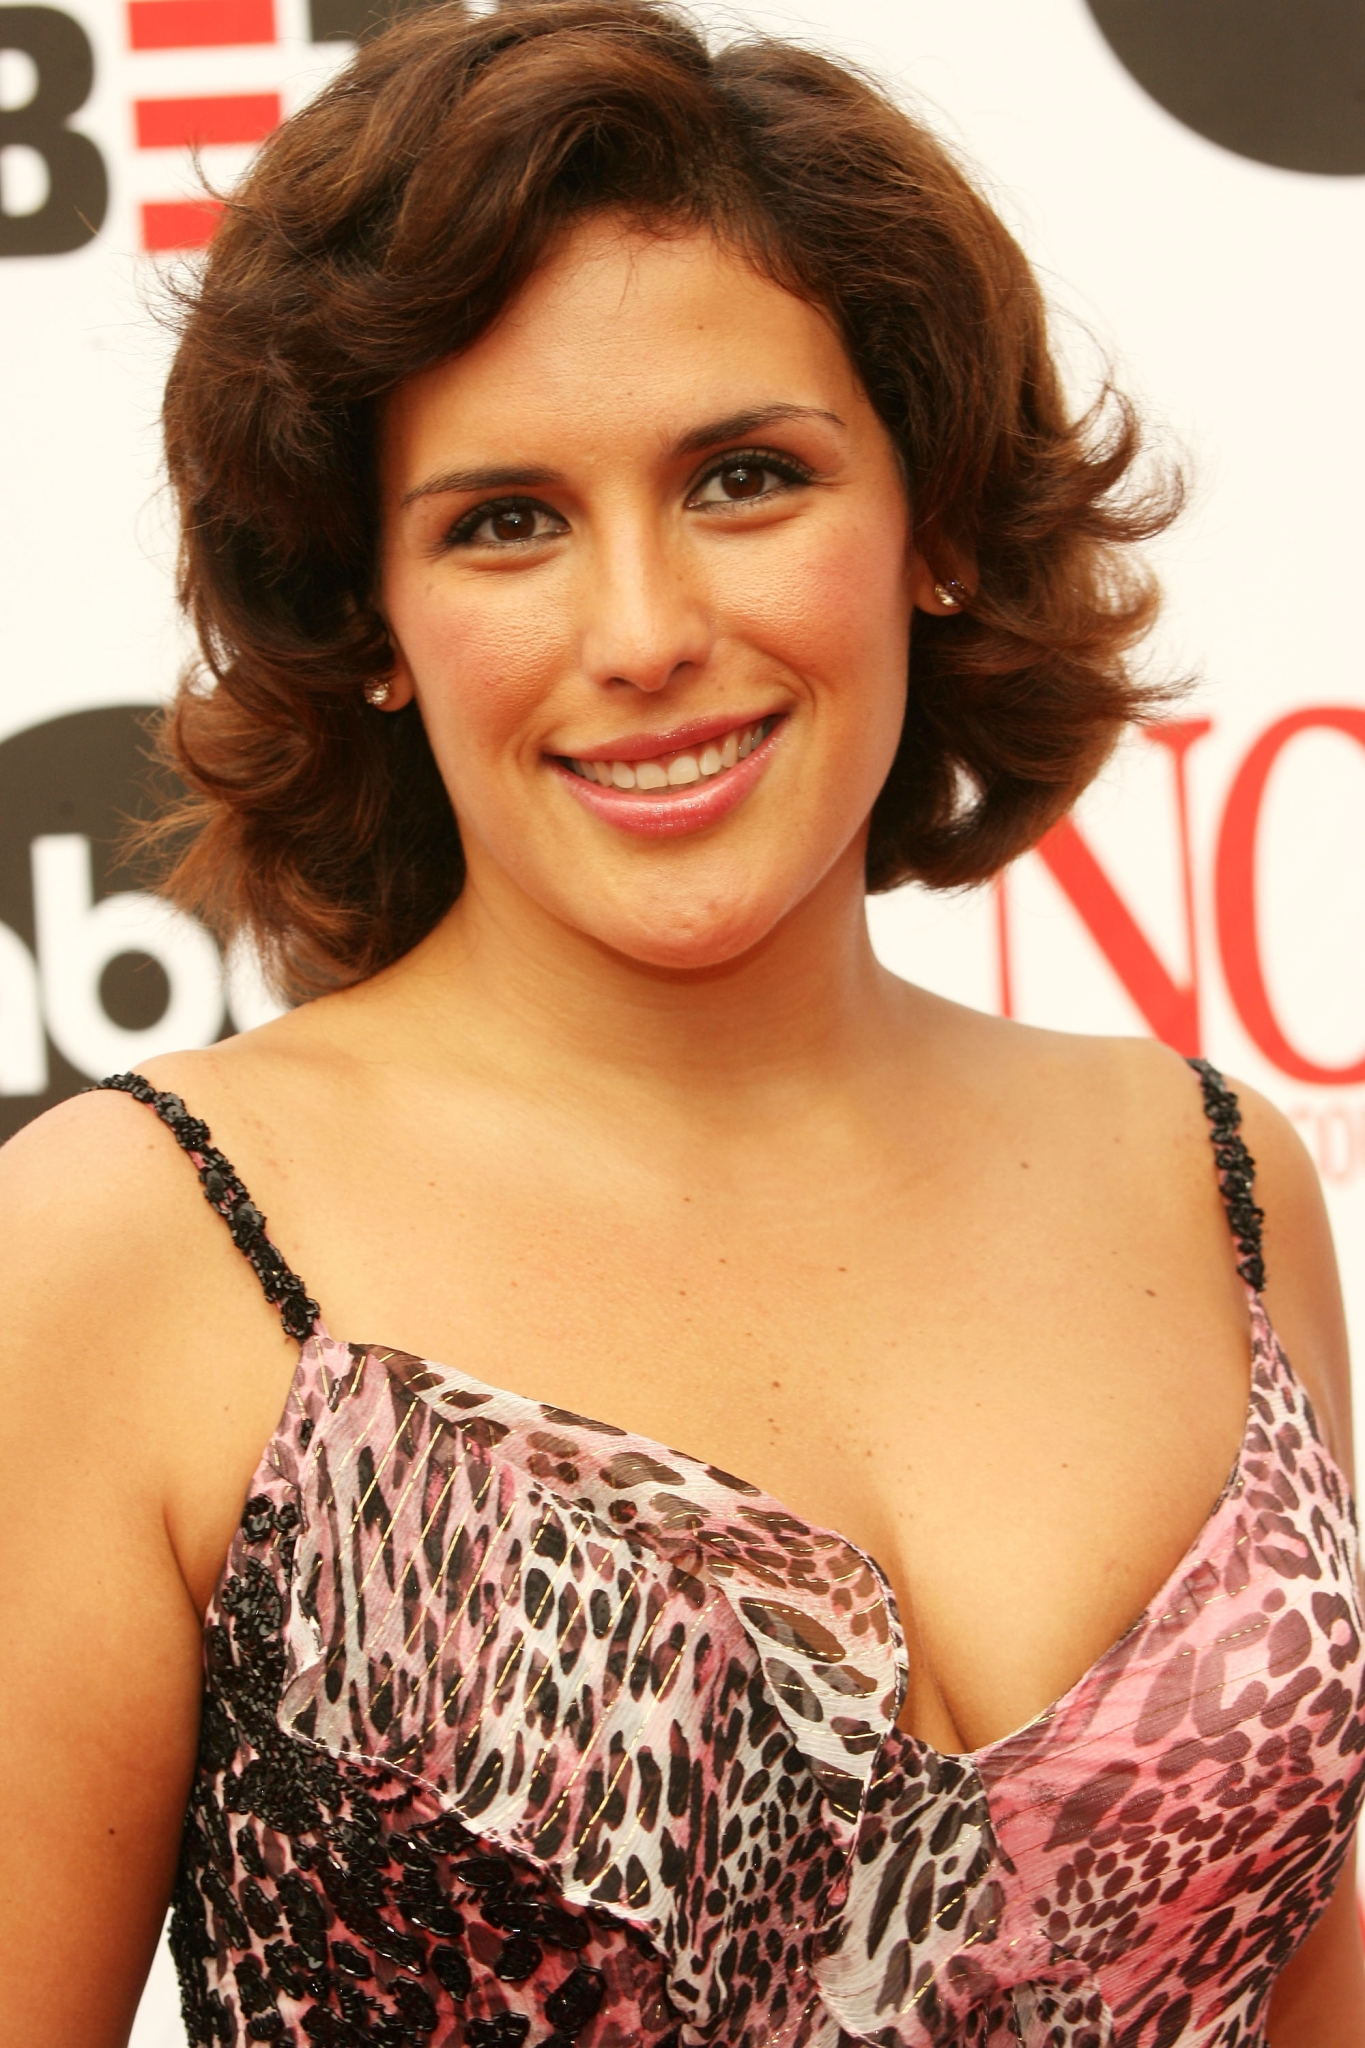 mexican actress angelica vale named co-host of fiesta de la flor